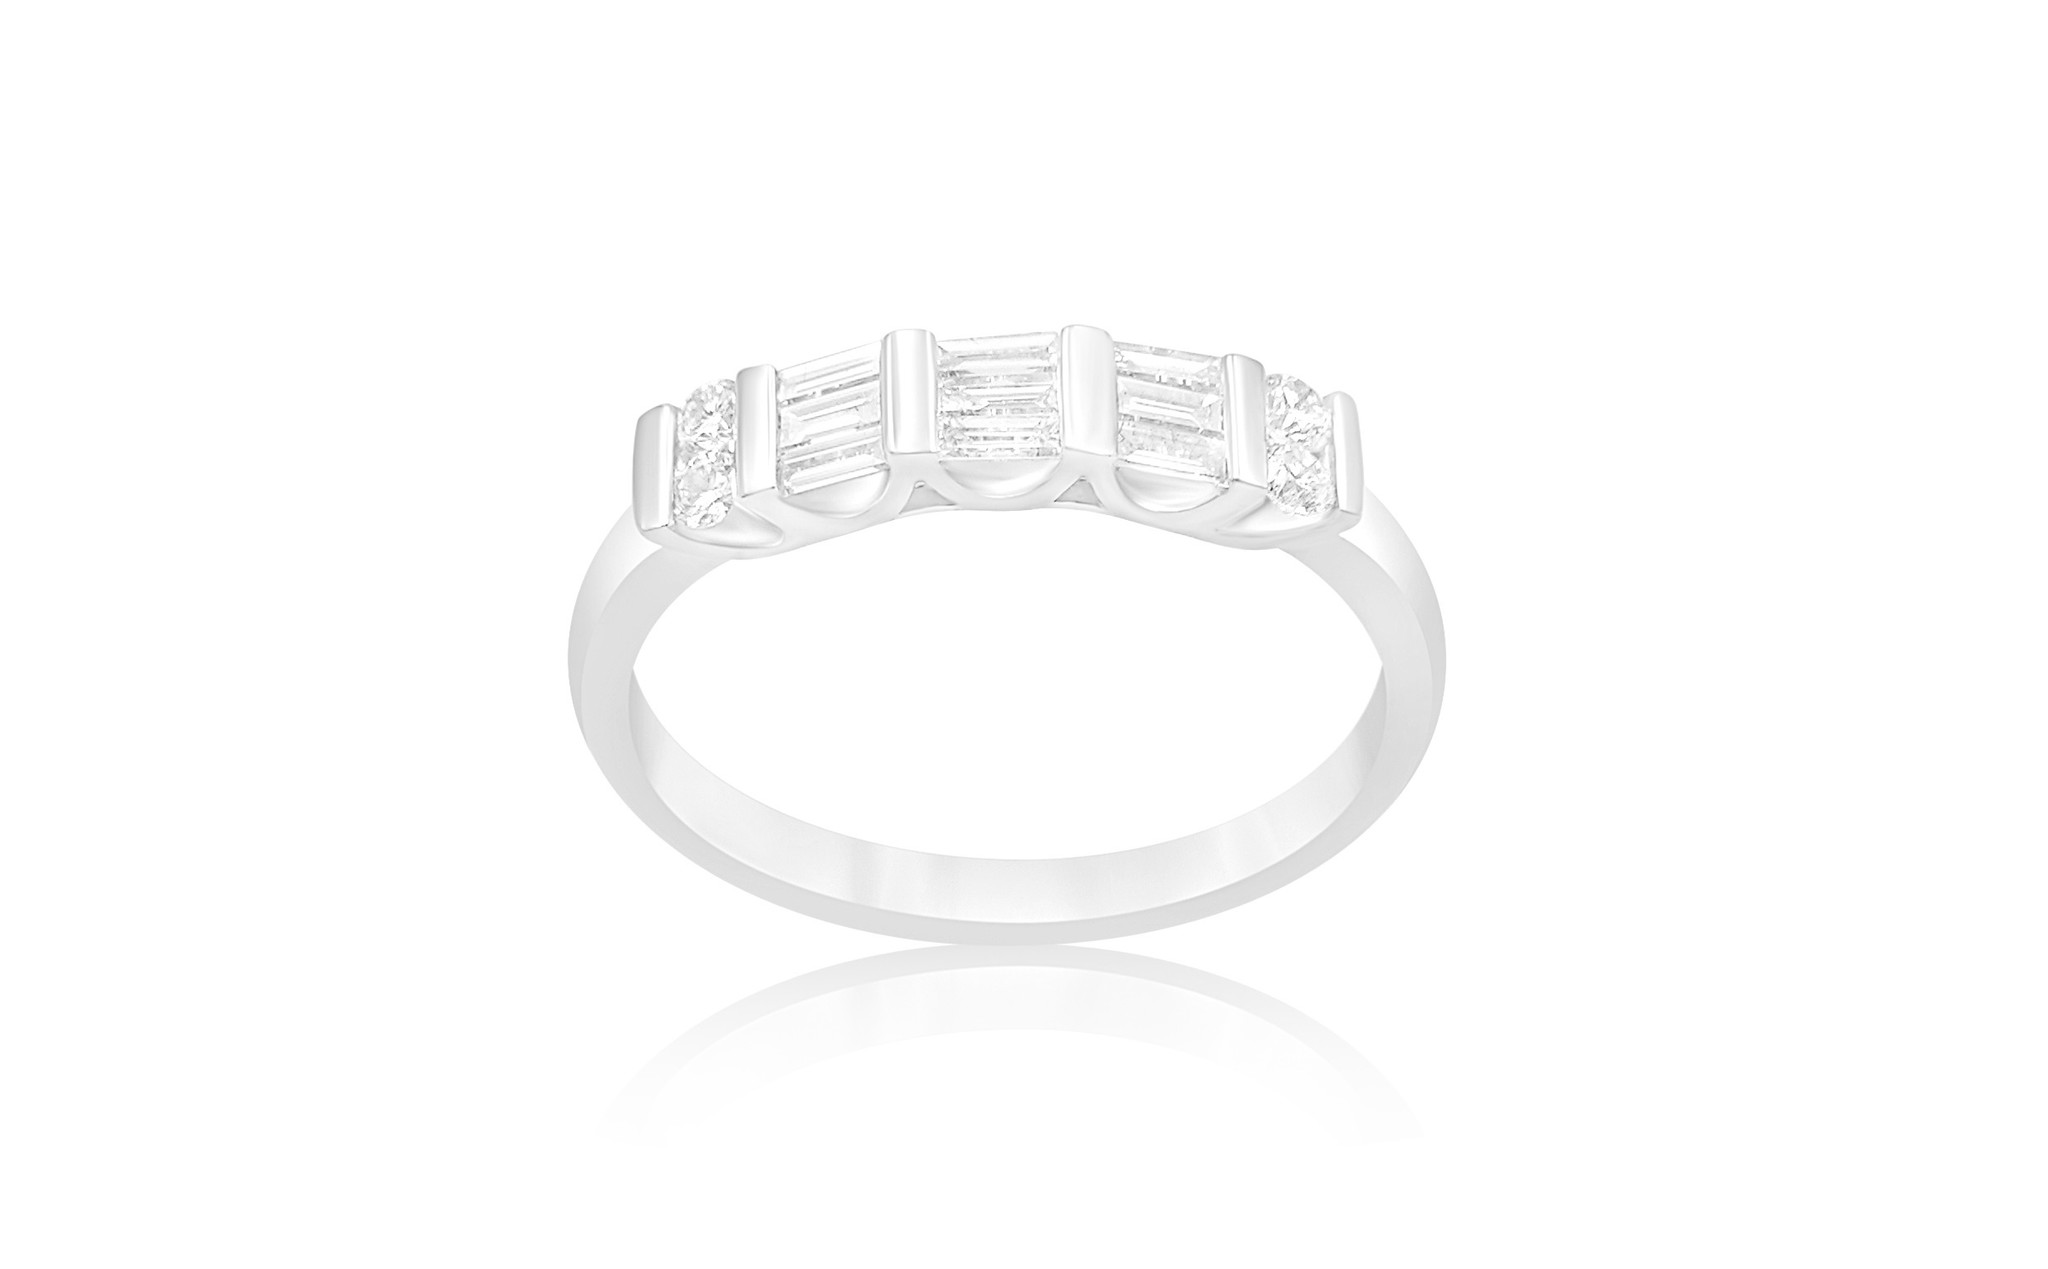 18kt white gold ring with 0.40 CT diamonds